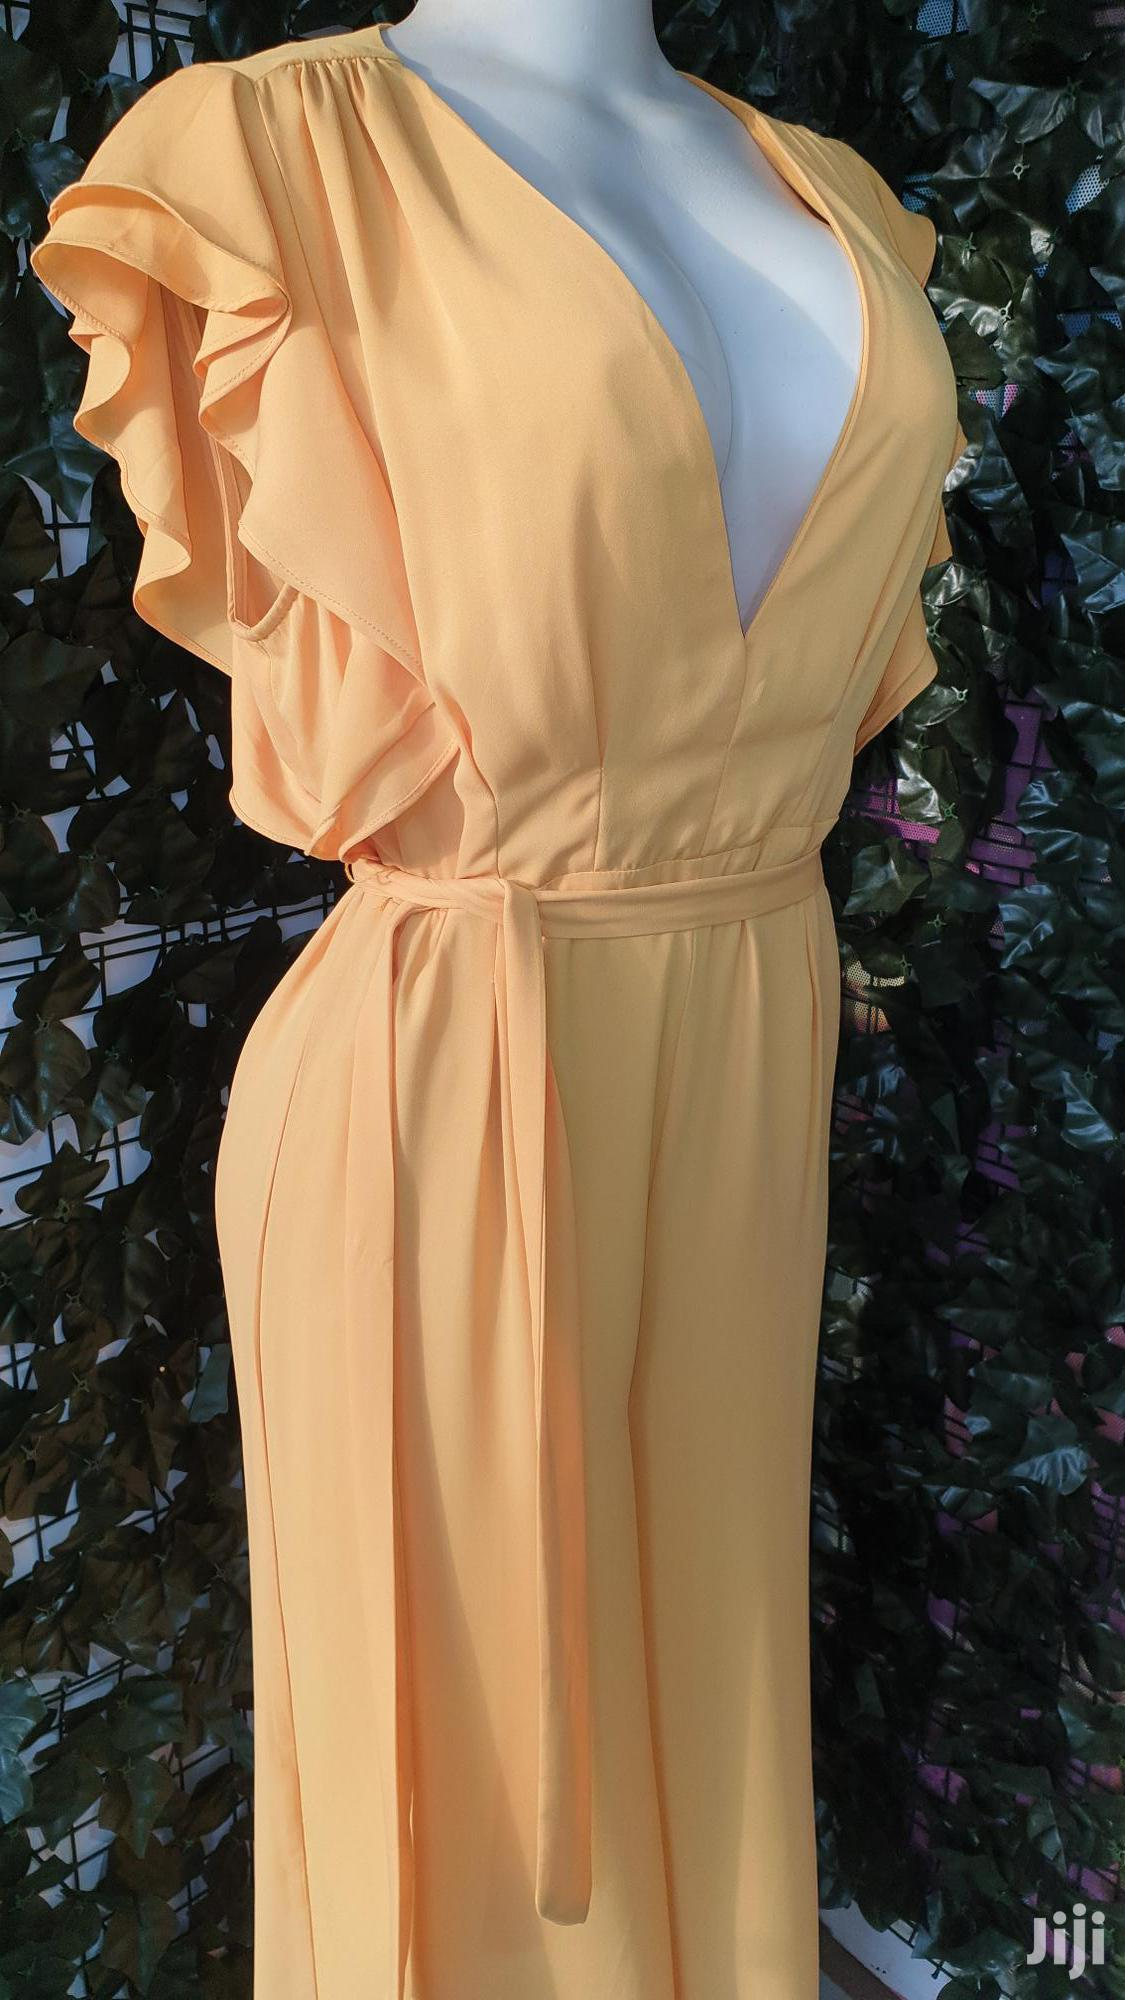 Yellow Vintage Jumpsuit For Slaw